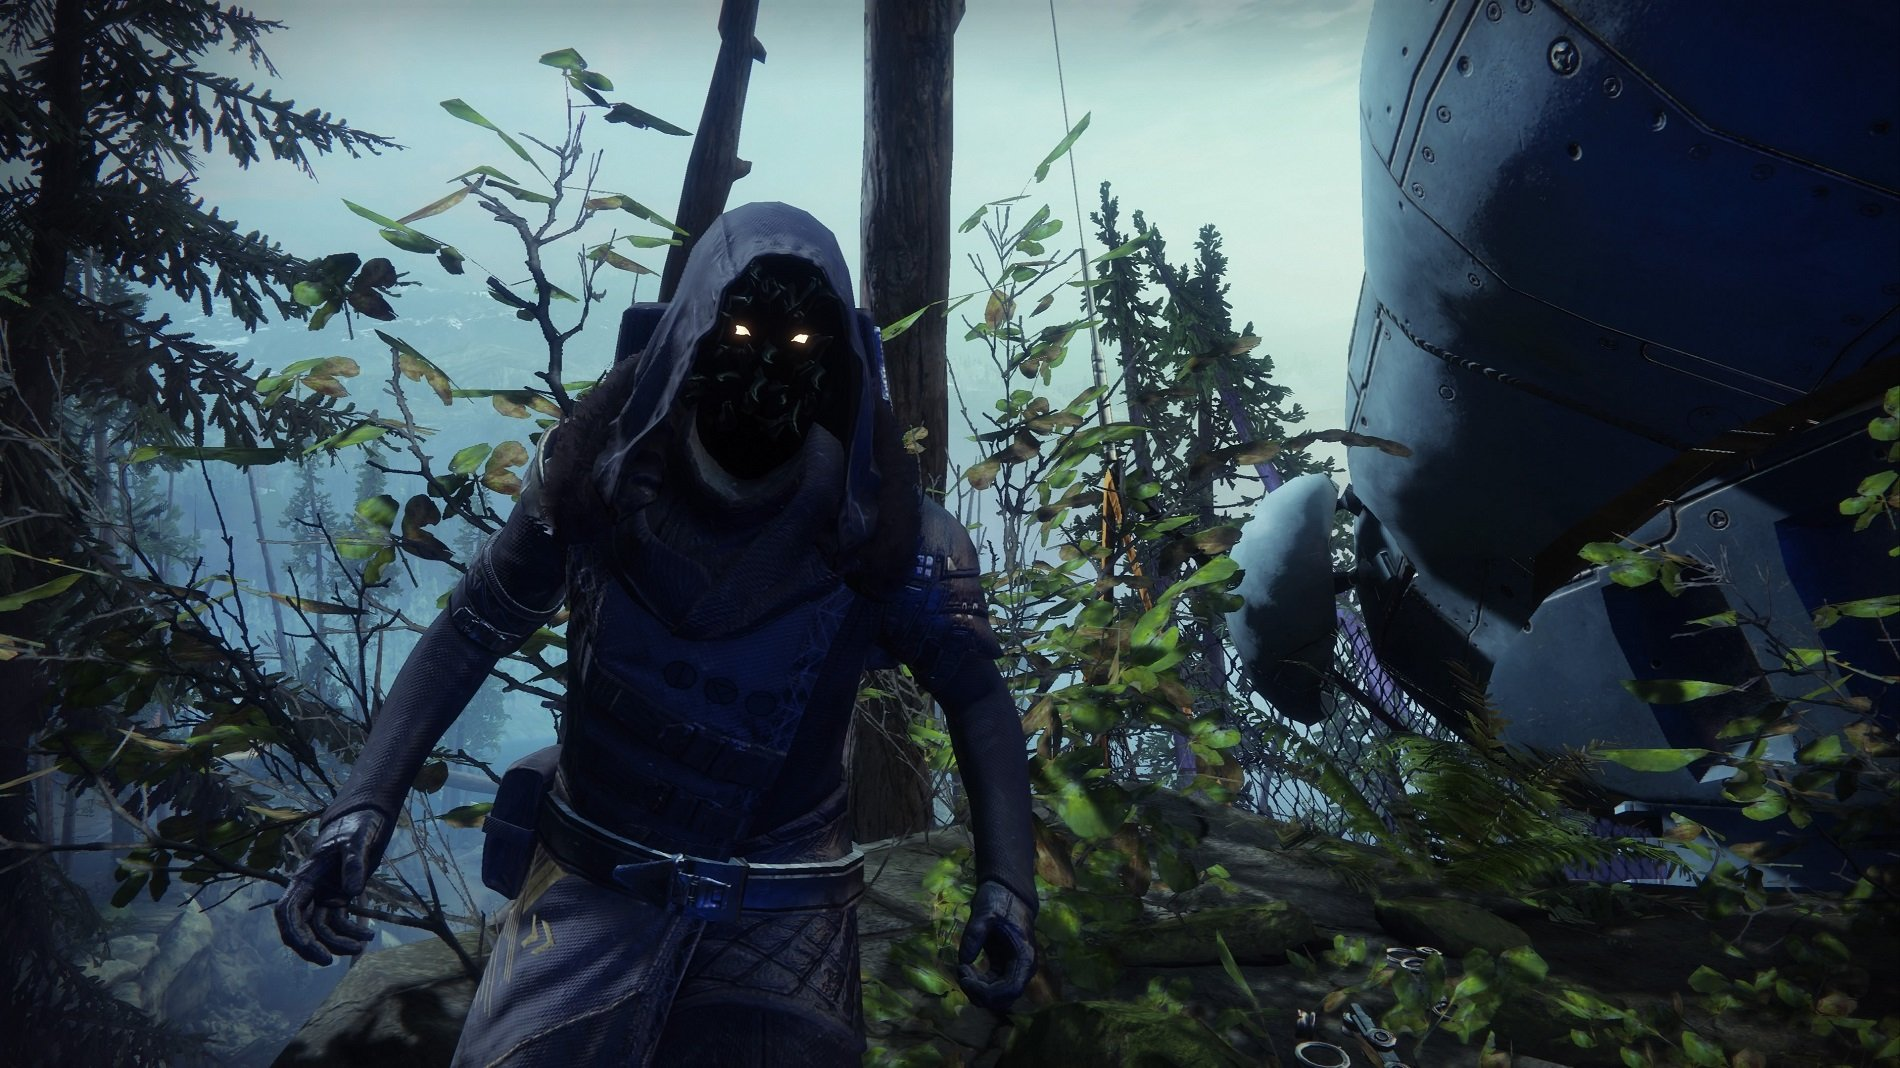 Where to find Xur in Destiny 2 - February 14, 2020